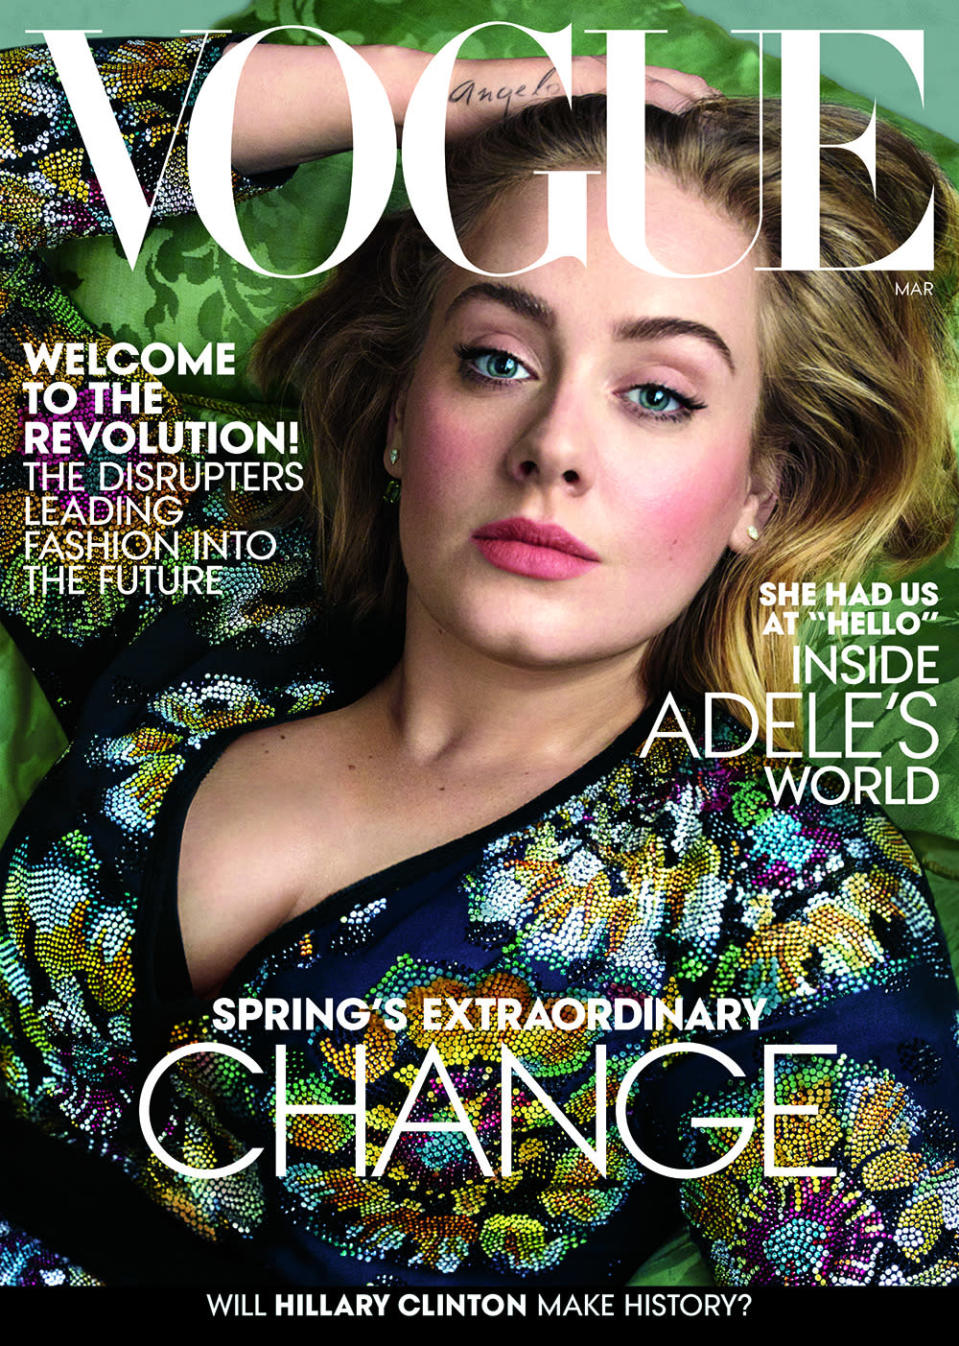 """<p>With her hit comeback album <i>25 </i>and an upcoming international tour, Adele <a href=""""http://www.vogue.com/13393643/adele-march-2016-cover"""" rel=""""nofollow noopener"""" target=""""_blank"""" data-ylk=""""slk:posed for the cover of American"""" class=""""link rapid-noclick-resp"""">posed for the cover of American </a><i><a href=""""http://www.vogue.com/13393643/adele-march-2016-cover"""" rel=""""nofollow noopener"""" target=""""_blank"""" data-ylk=""""slk:Vogue"""" class=""""link rapid-noclick-resp"""">Vogue</a> </i>and talked with Hamish Bowles about her music, son, confidence, and more. """"I was just shocked that all of a sudden I was 25!"""" she told the magazine. """"But actually, I like myself more than ever. I feel so comfortable in my own skin. I really like how I look, I like who I am, I like everyone that I surround myself with."""" <i>Photo: Annie Leibovitz/Courtesy of Vogue</i><br></p>"""